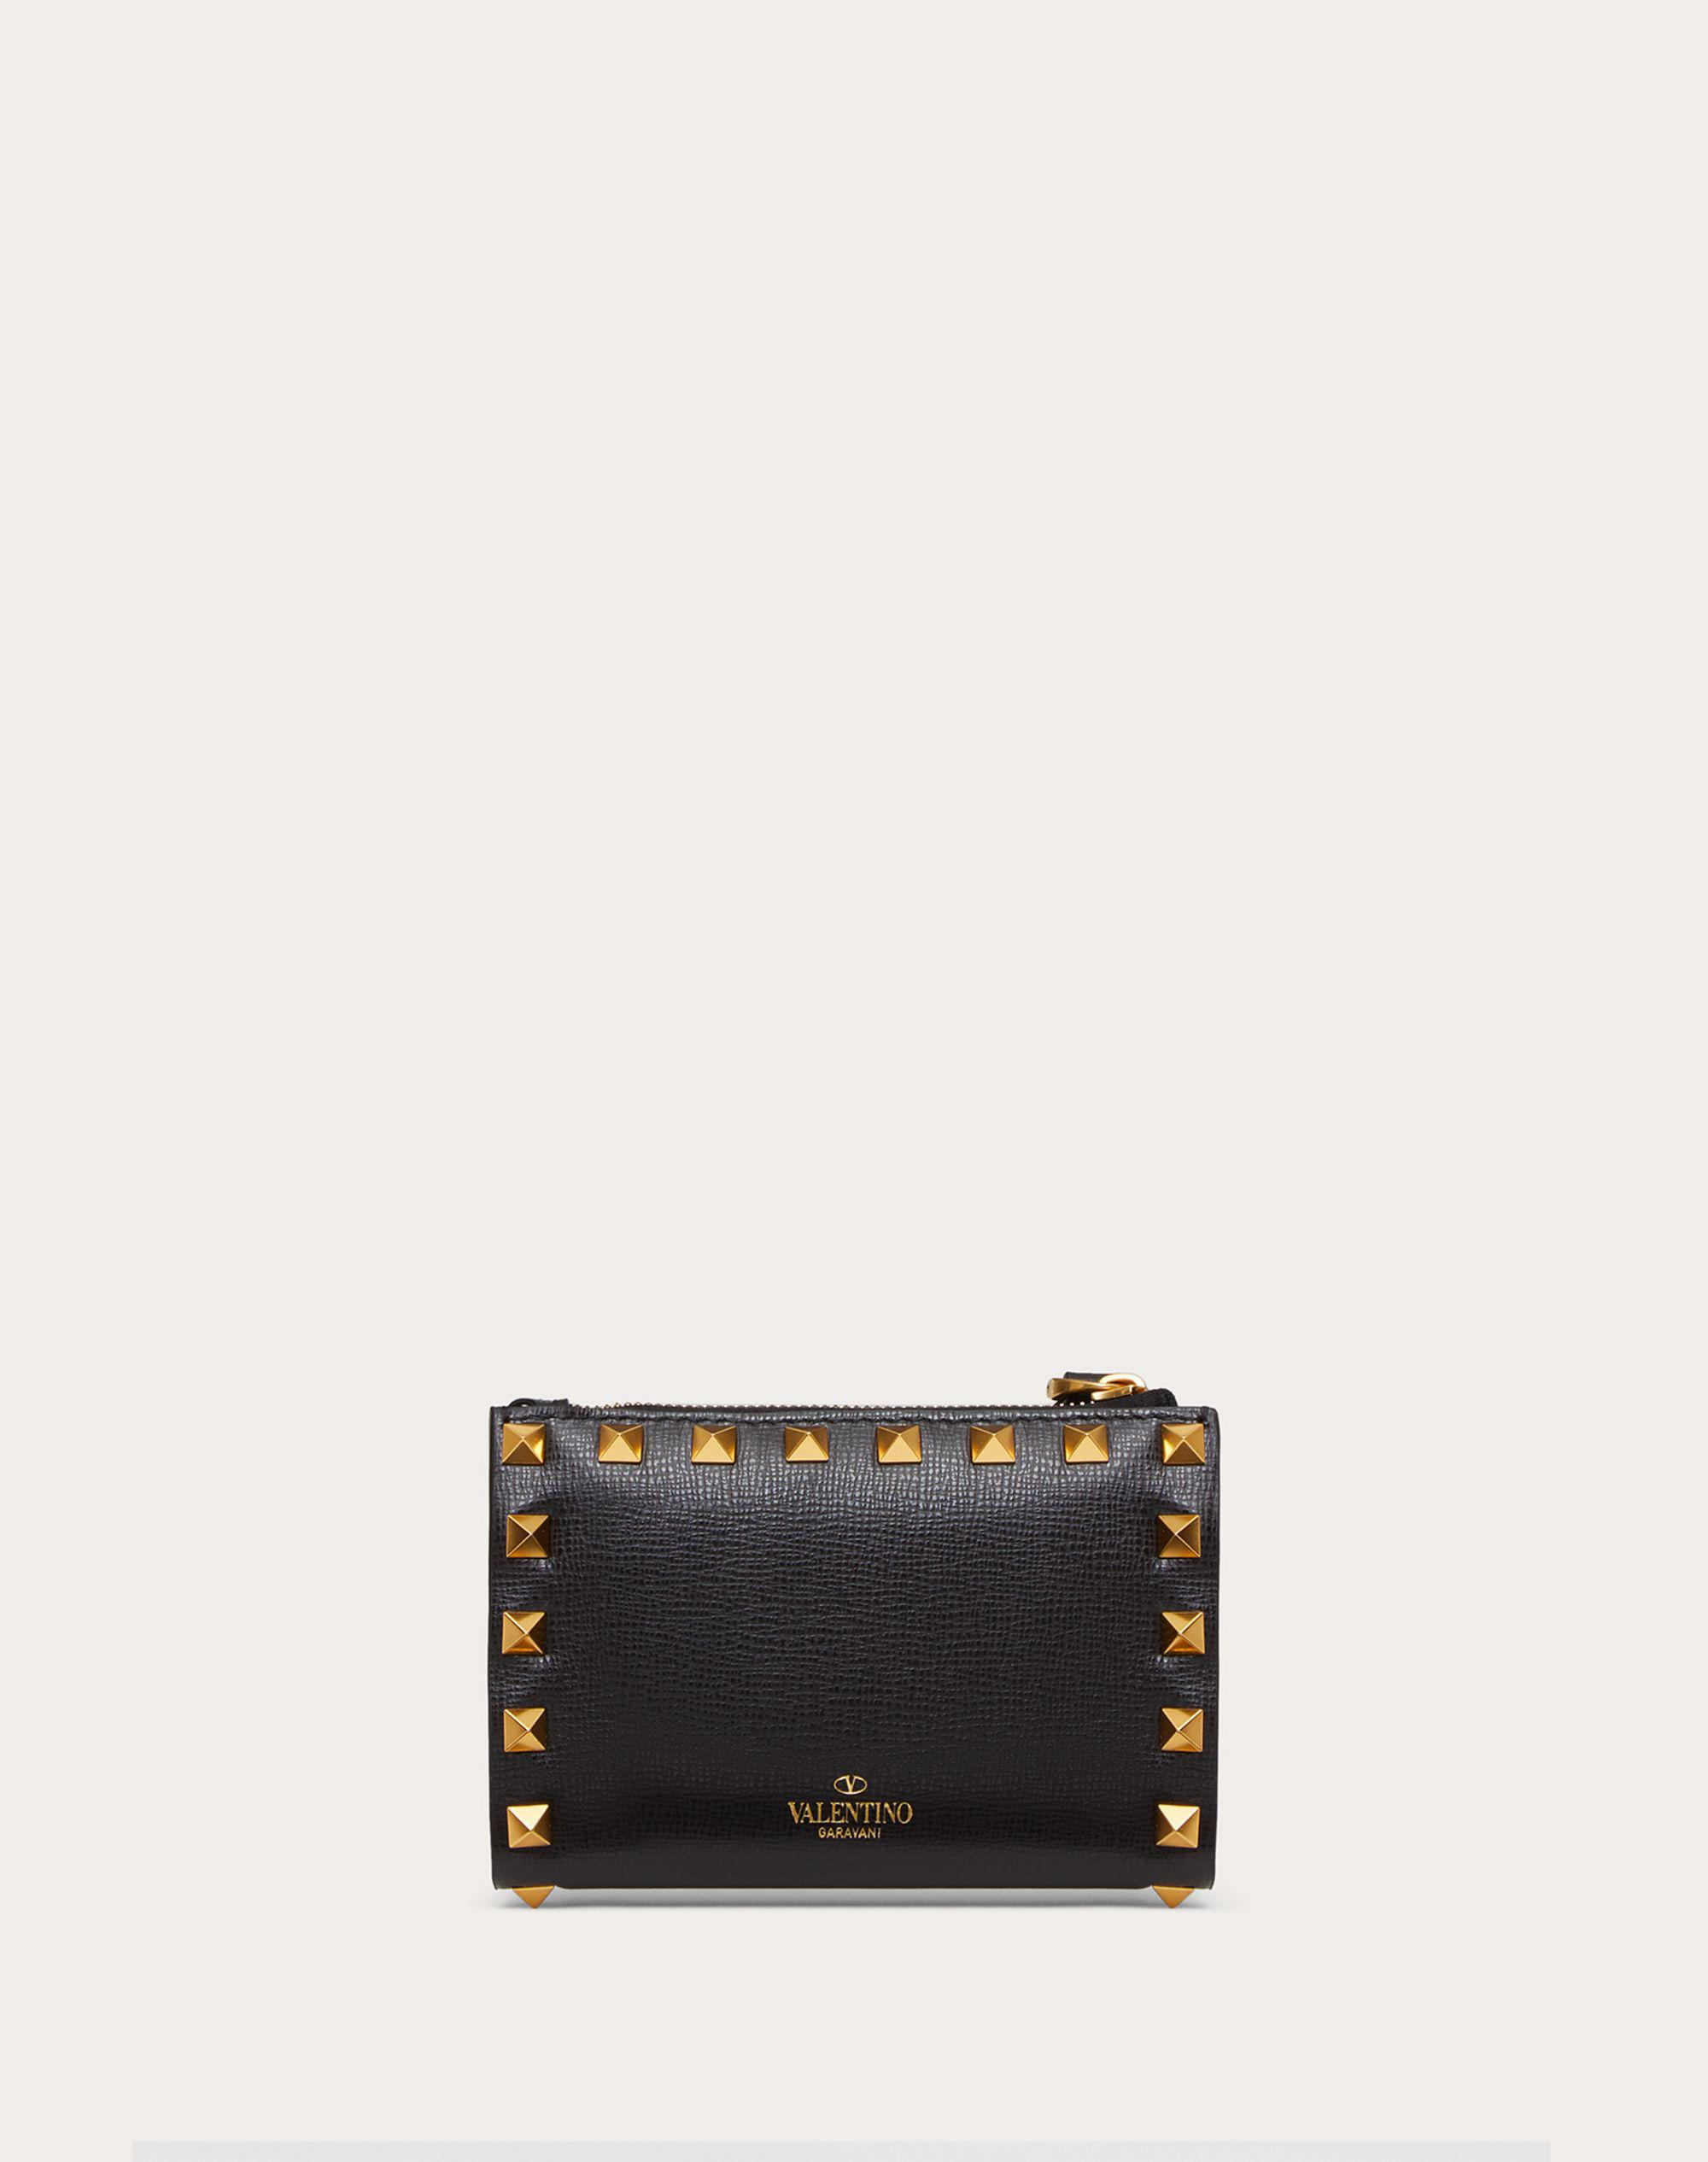 VALENTINO GARAVANI ROCKSTUD COIN PURSE AND CARDHOLDER IN GRAINY CALFSKIN LEATHER WITH ALL-OVER STUDS 2